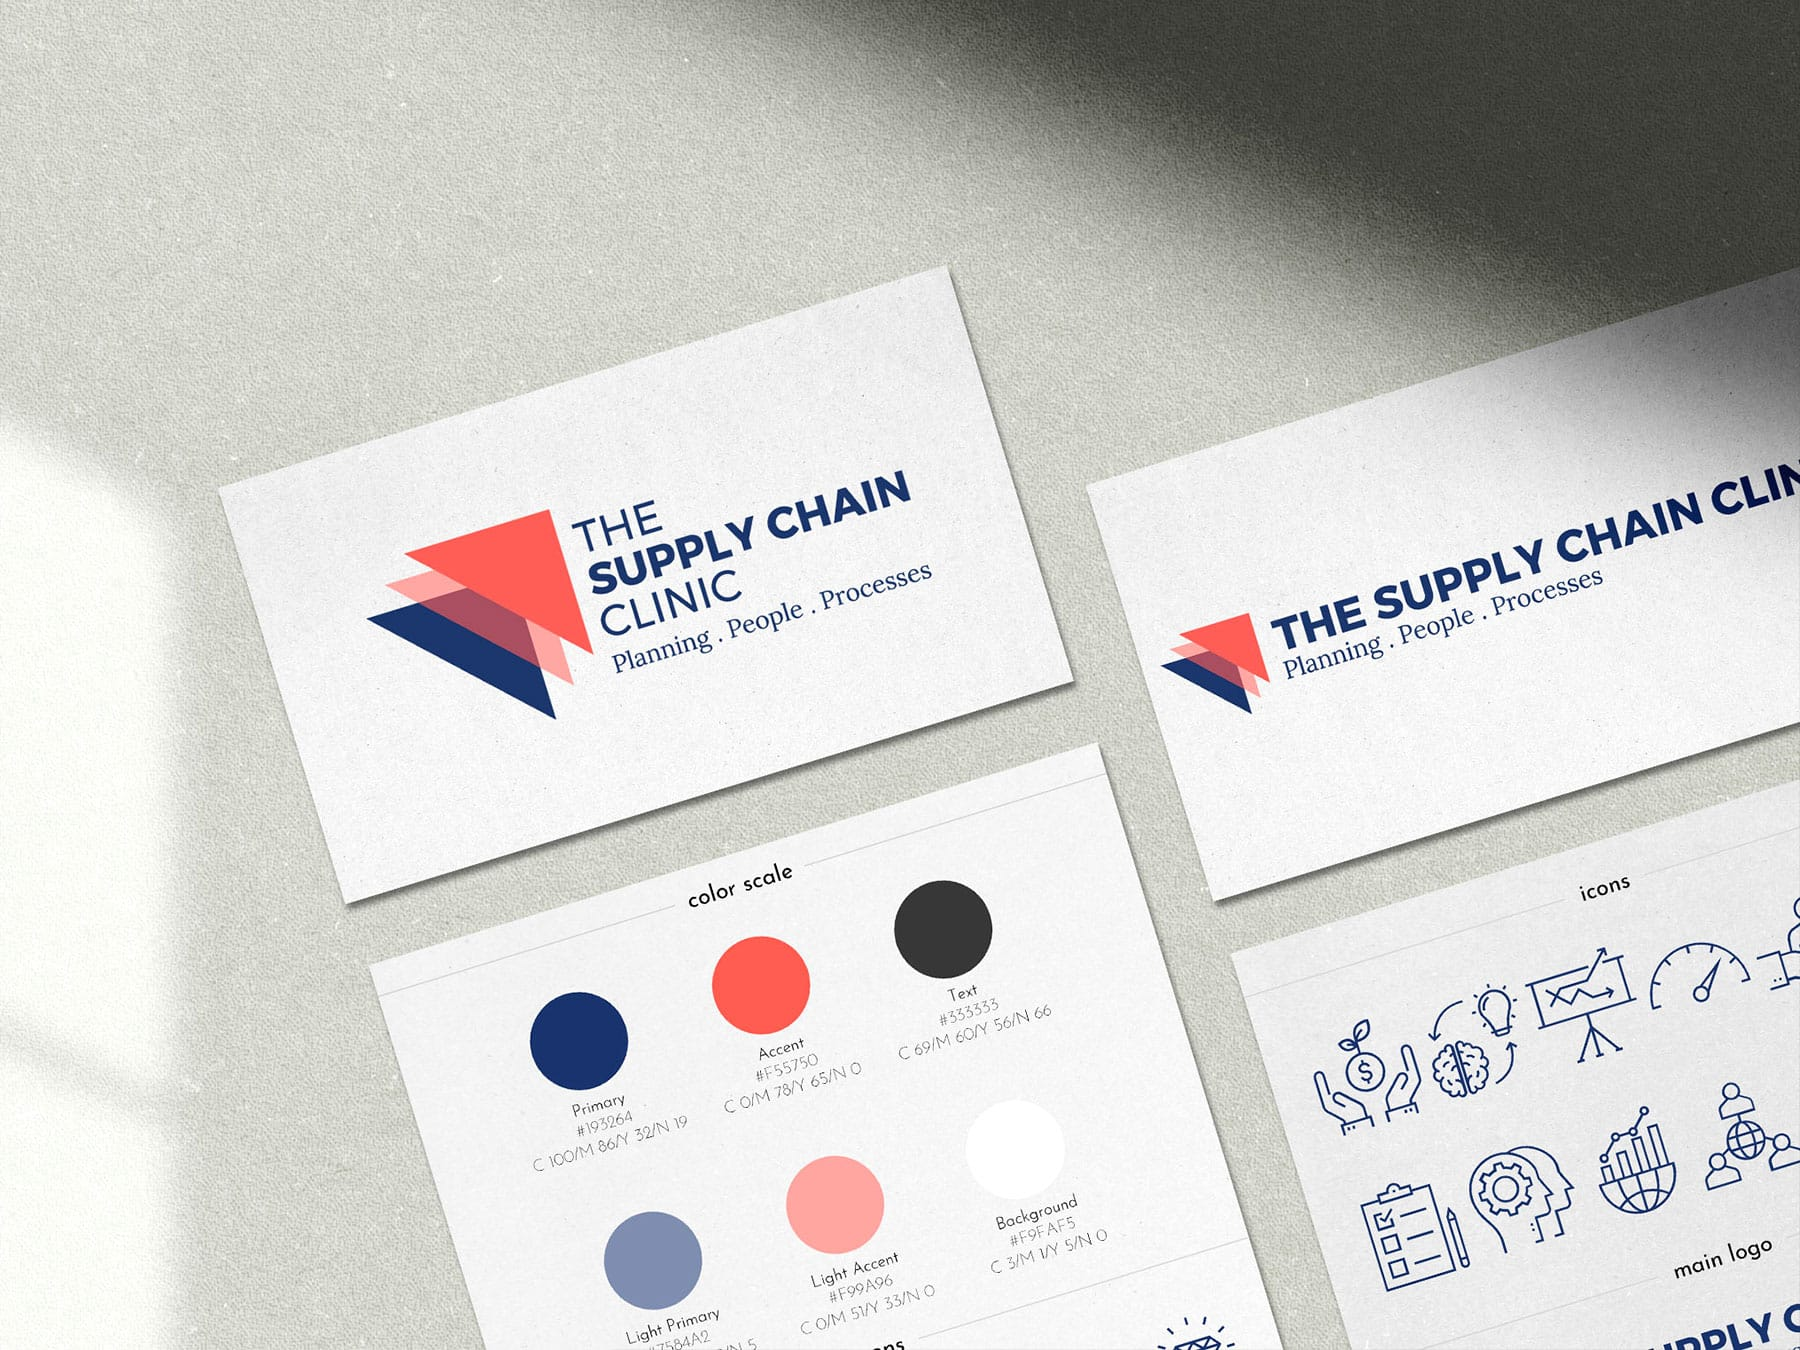 The Supply Chain Clinic